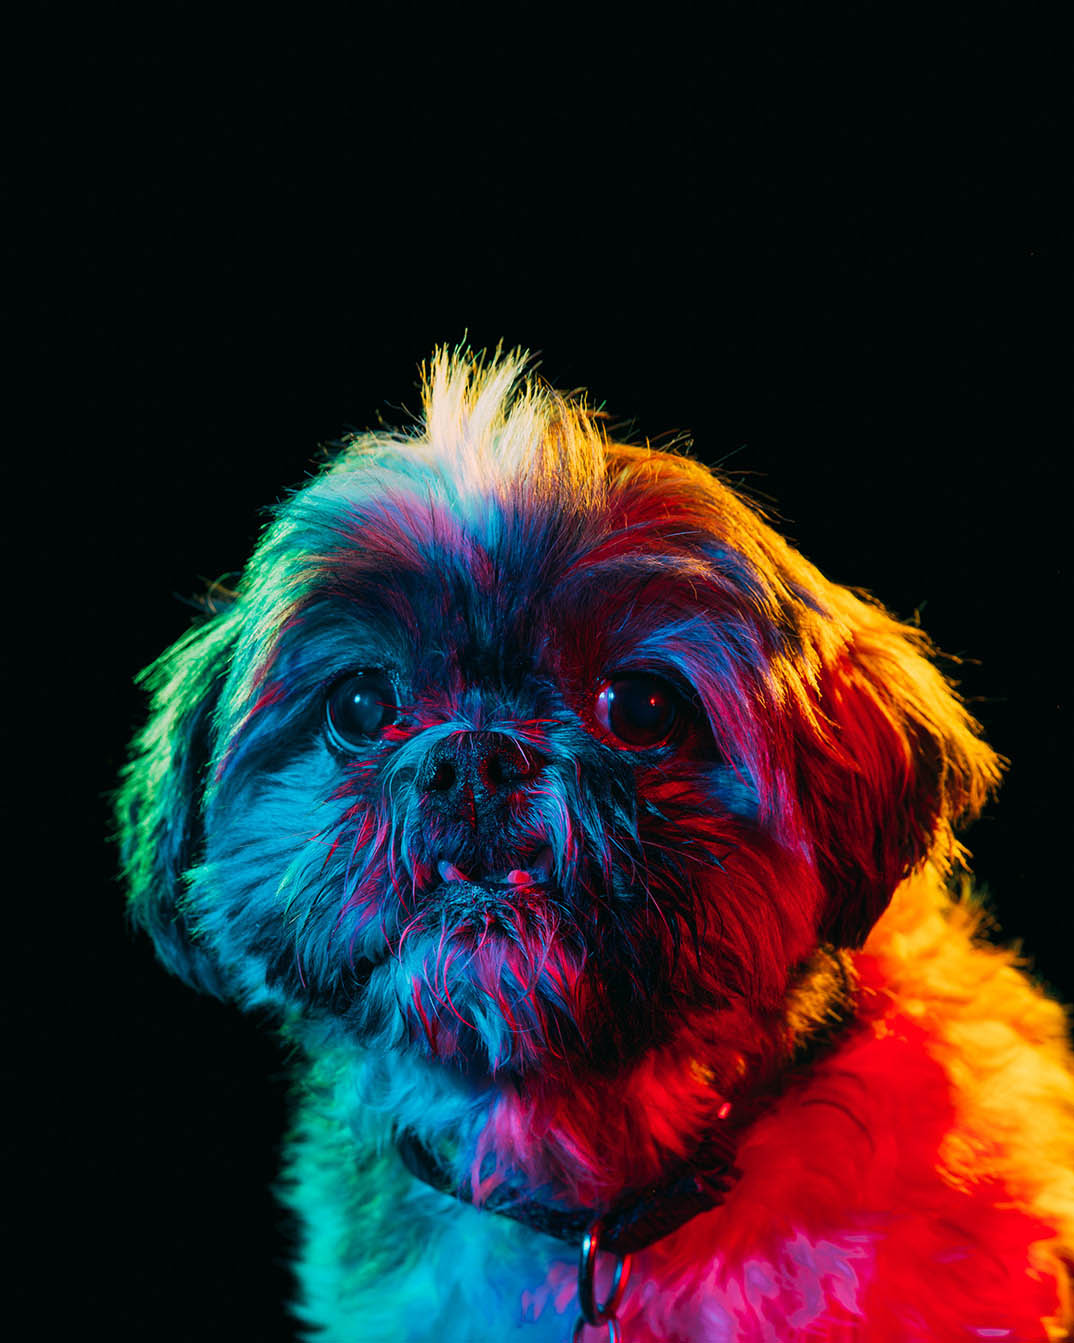 Dogs By Paul Octavious Theinspiration Com